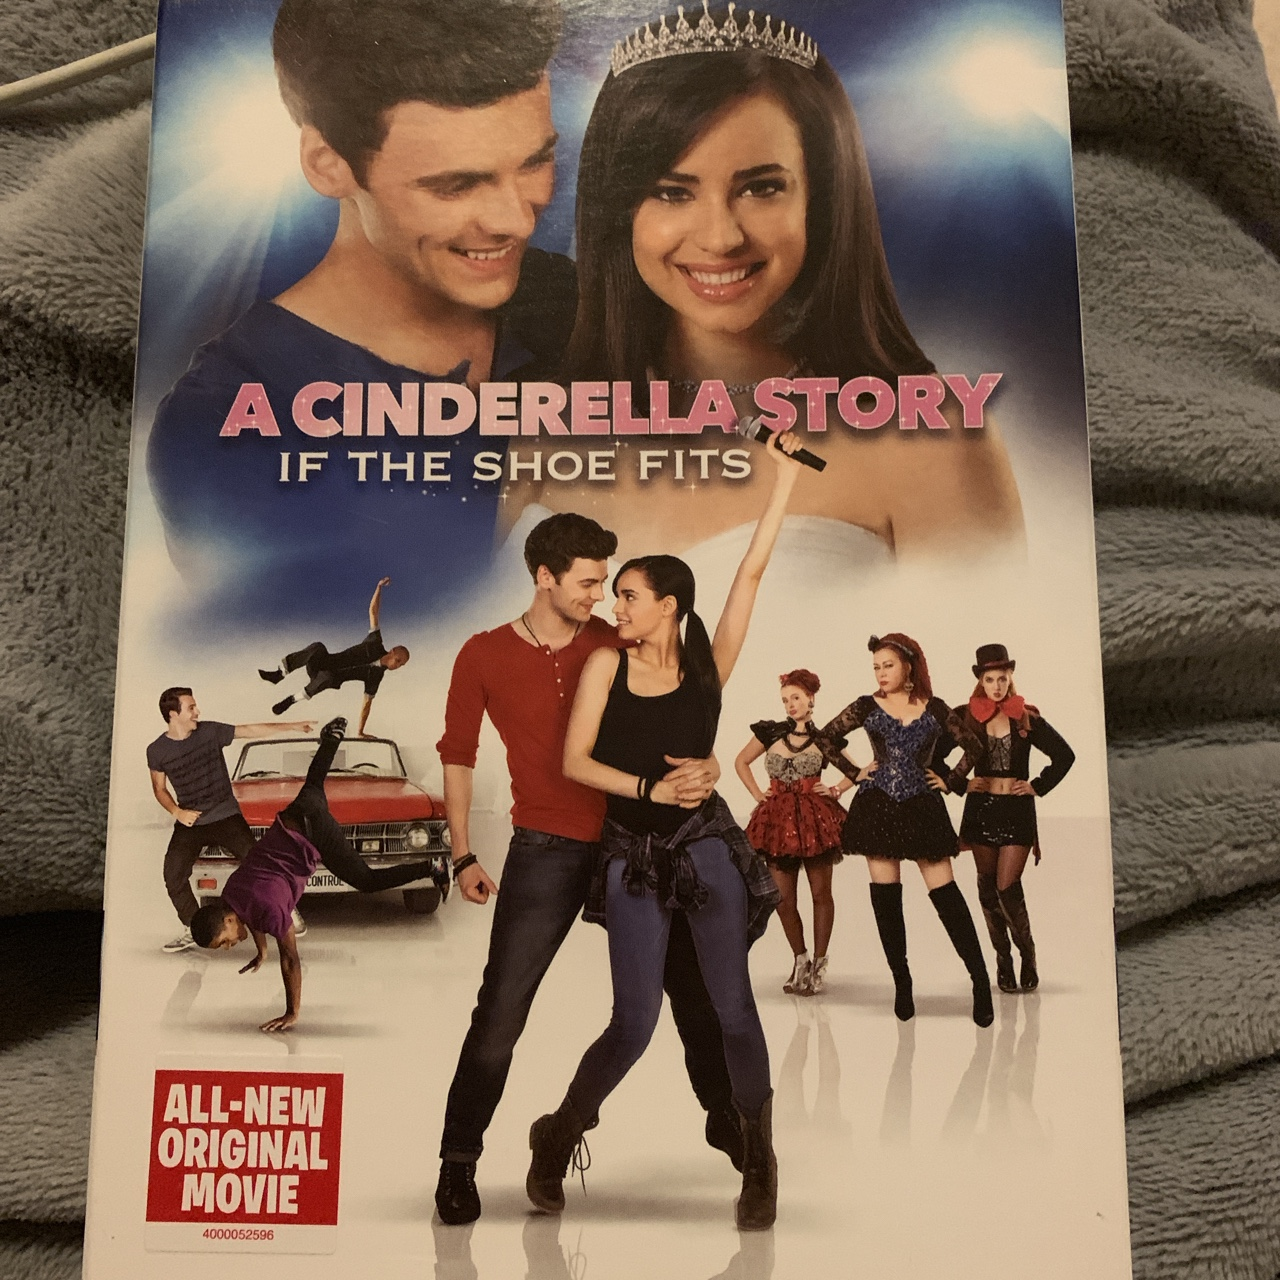 A Cinderella Story If The Shoe Fits Dvd Australia Cinderella Story If The Shoe Fits Dvd Brand New Depop